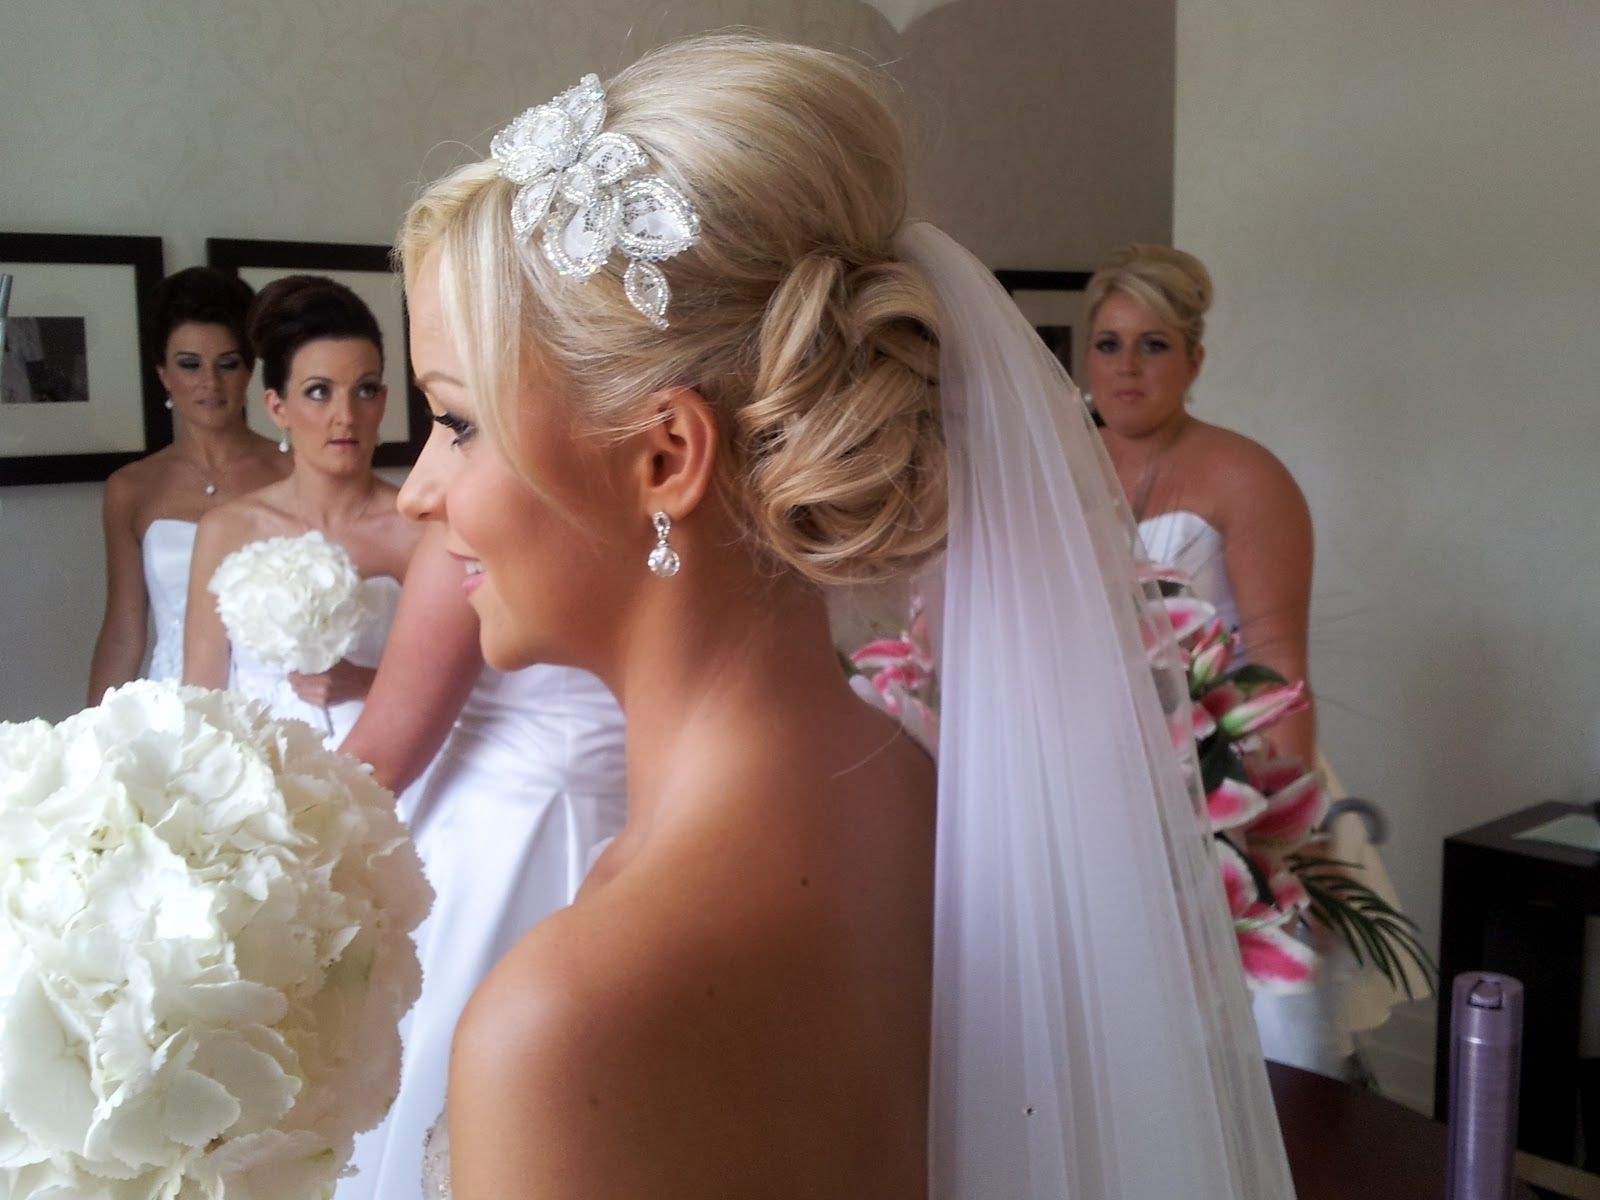 Summer And Spring Hair Styling Tips For A Gorgeous Wedding Hairstyle Pertaining To 2017 Wedding Hairstyles For Short Hair With Veil (View 12 of 15)